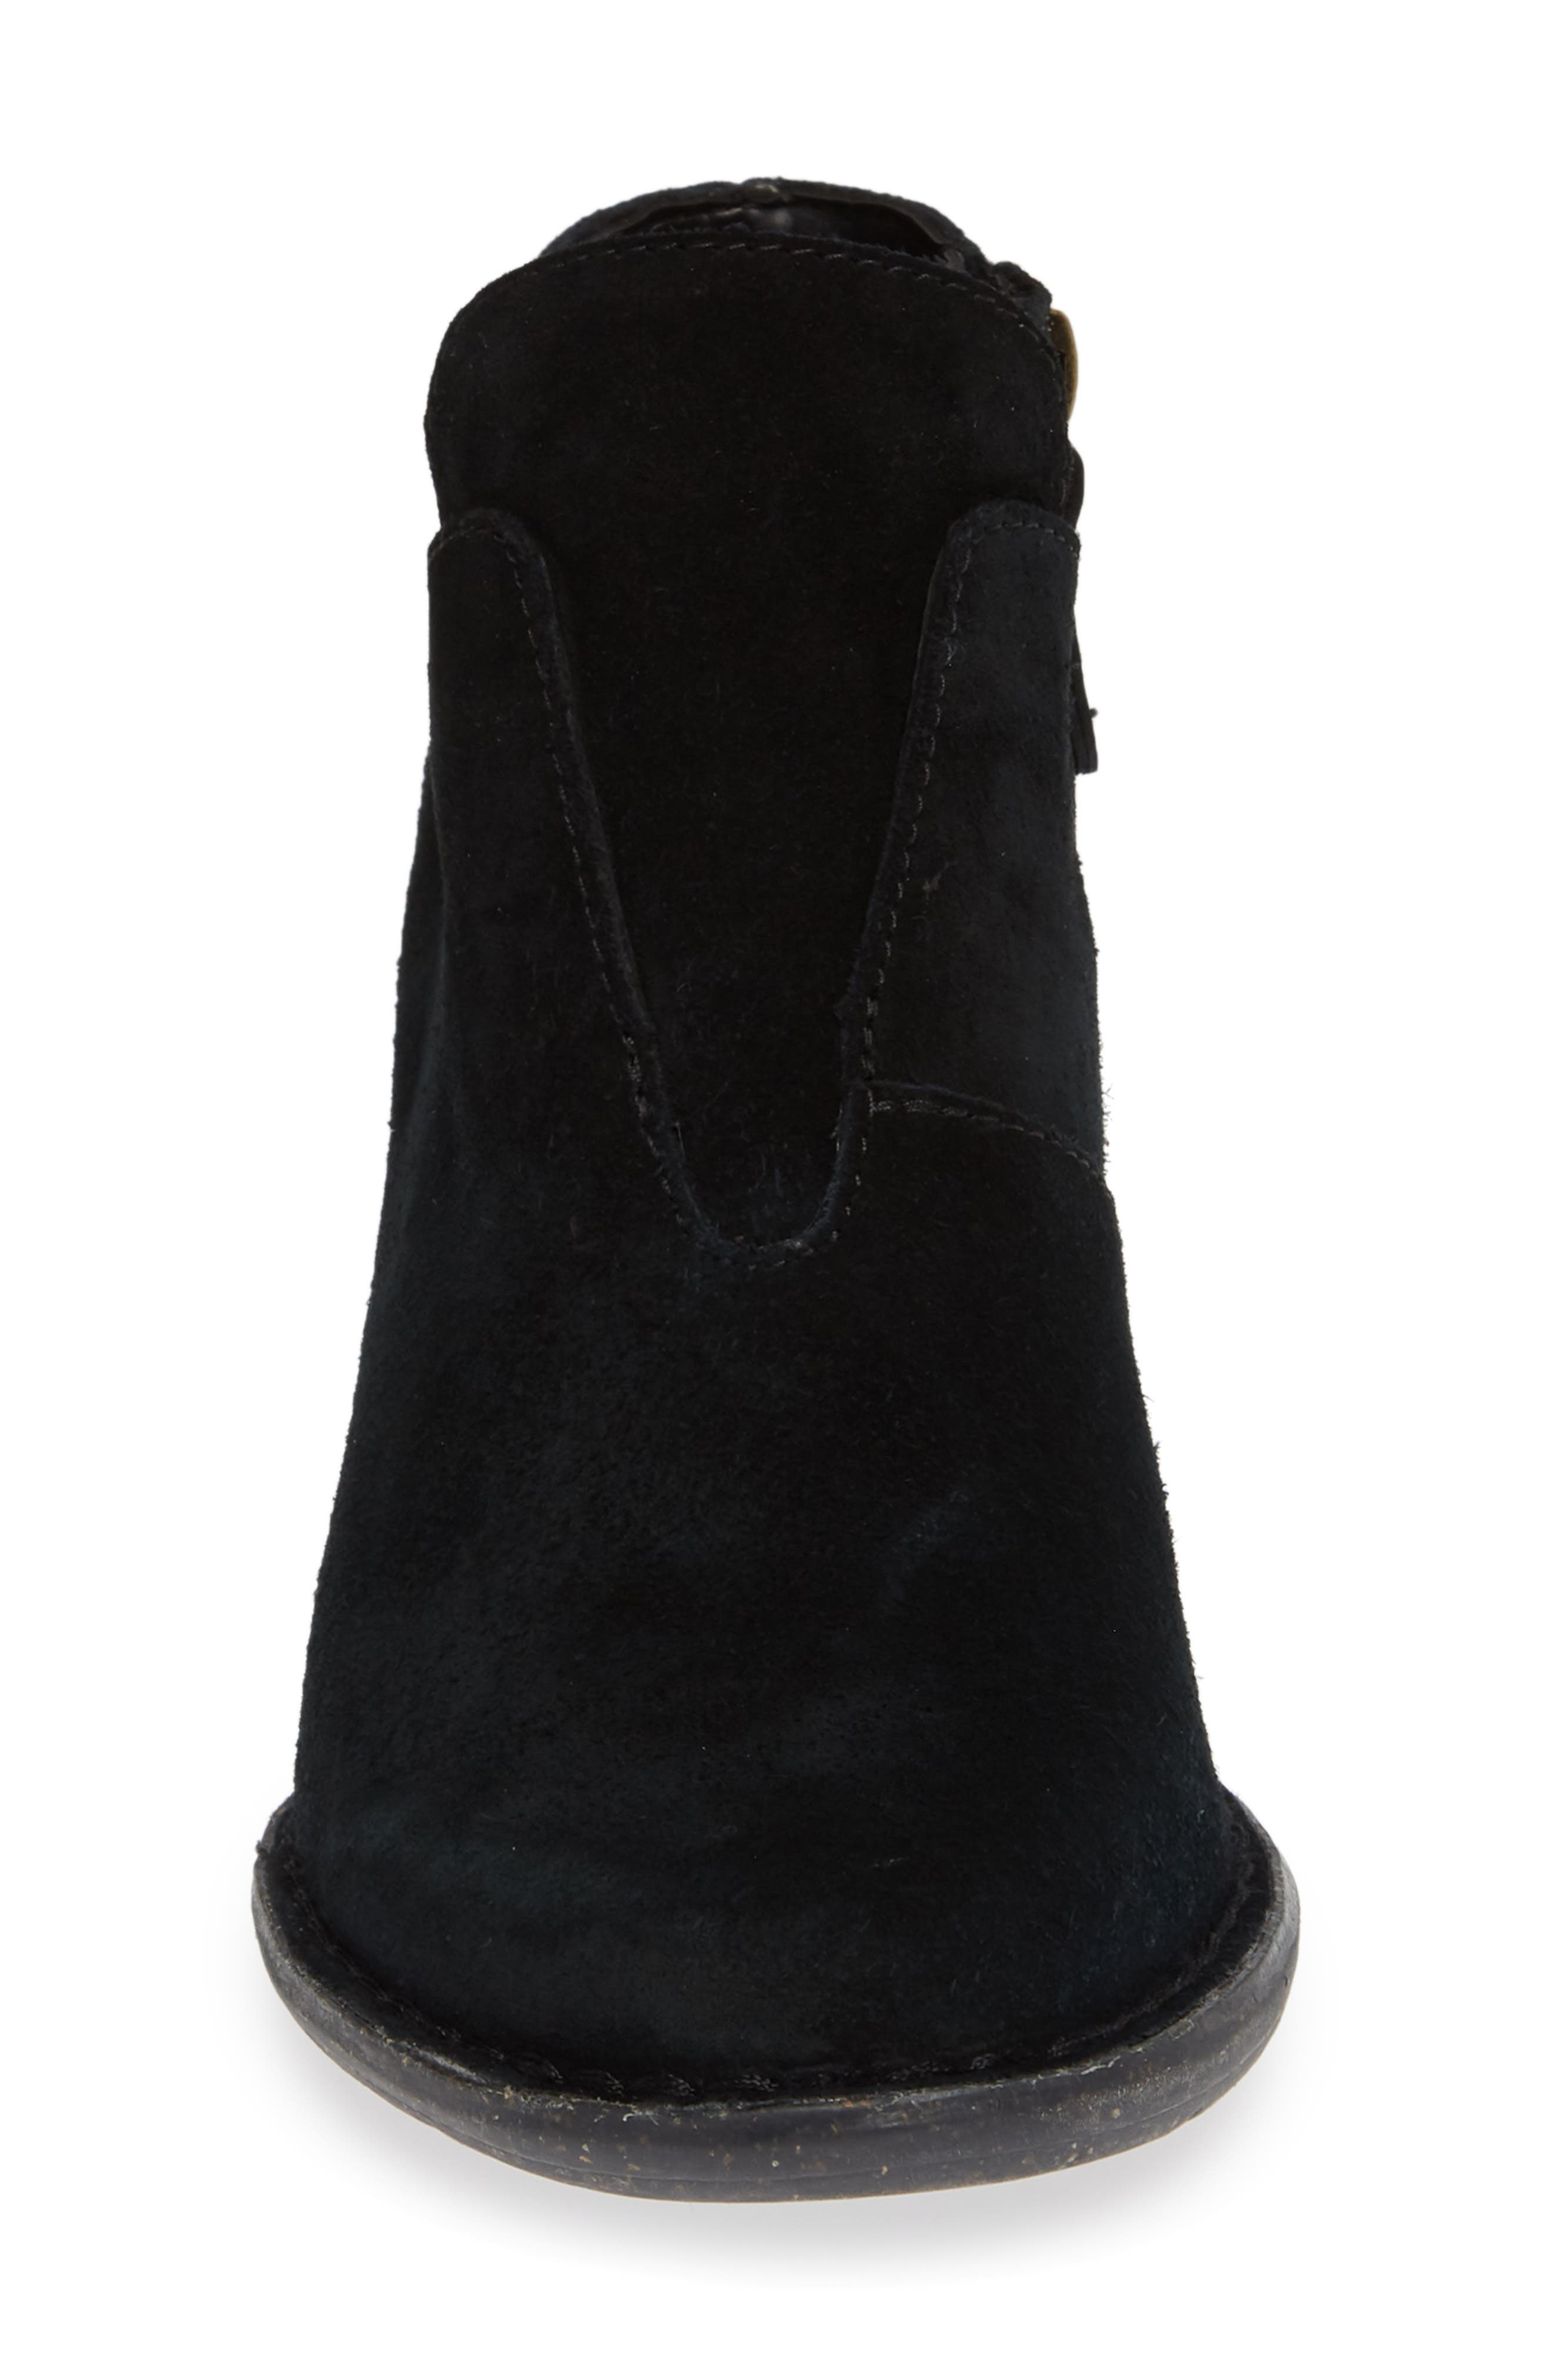 CLARKS<SUP>®</SUP>, Carleta York Bootie, Alternate thumbnail 4, color, BLACK SUEDE